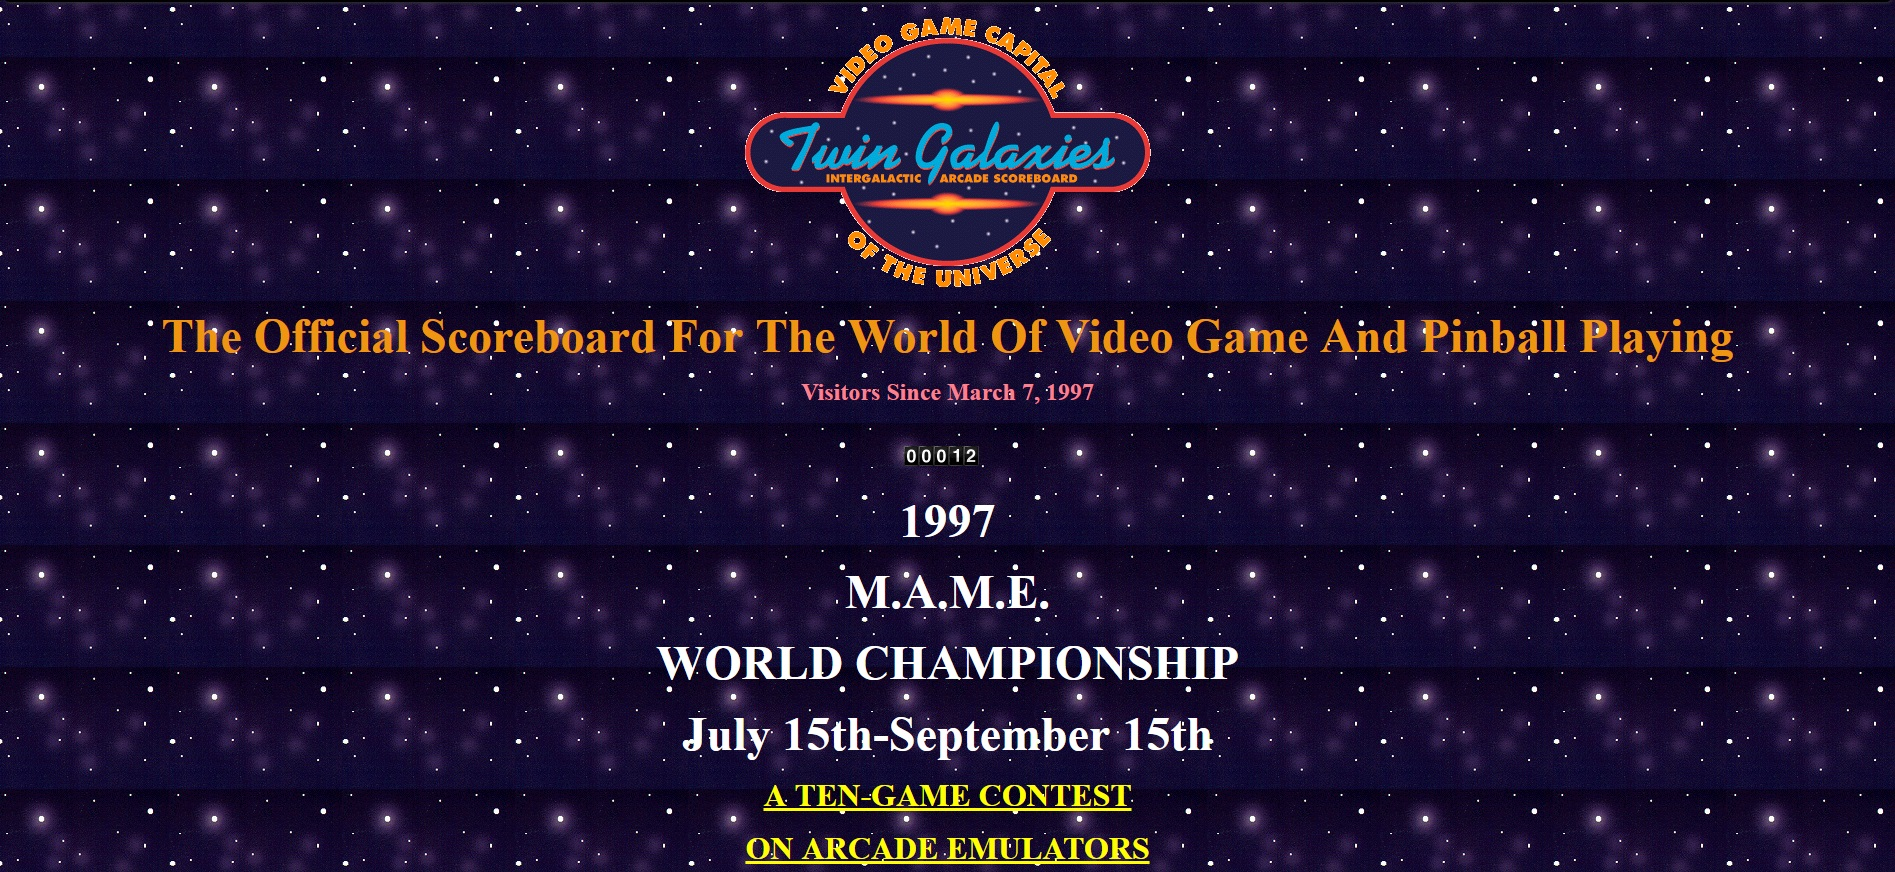 Twin Galaxies Scoreboard